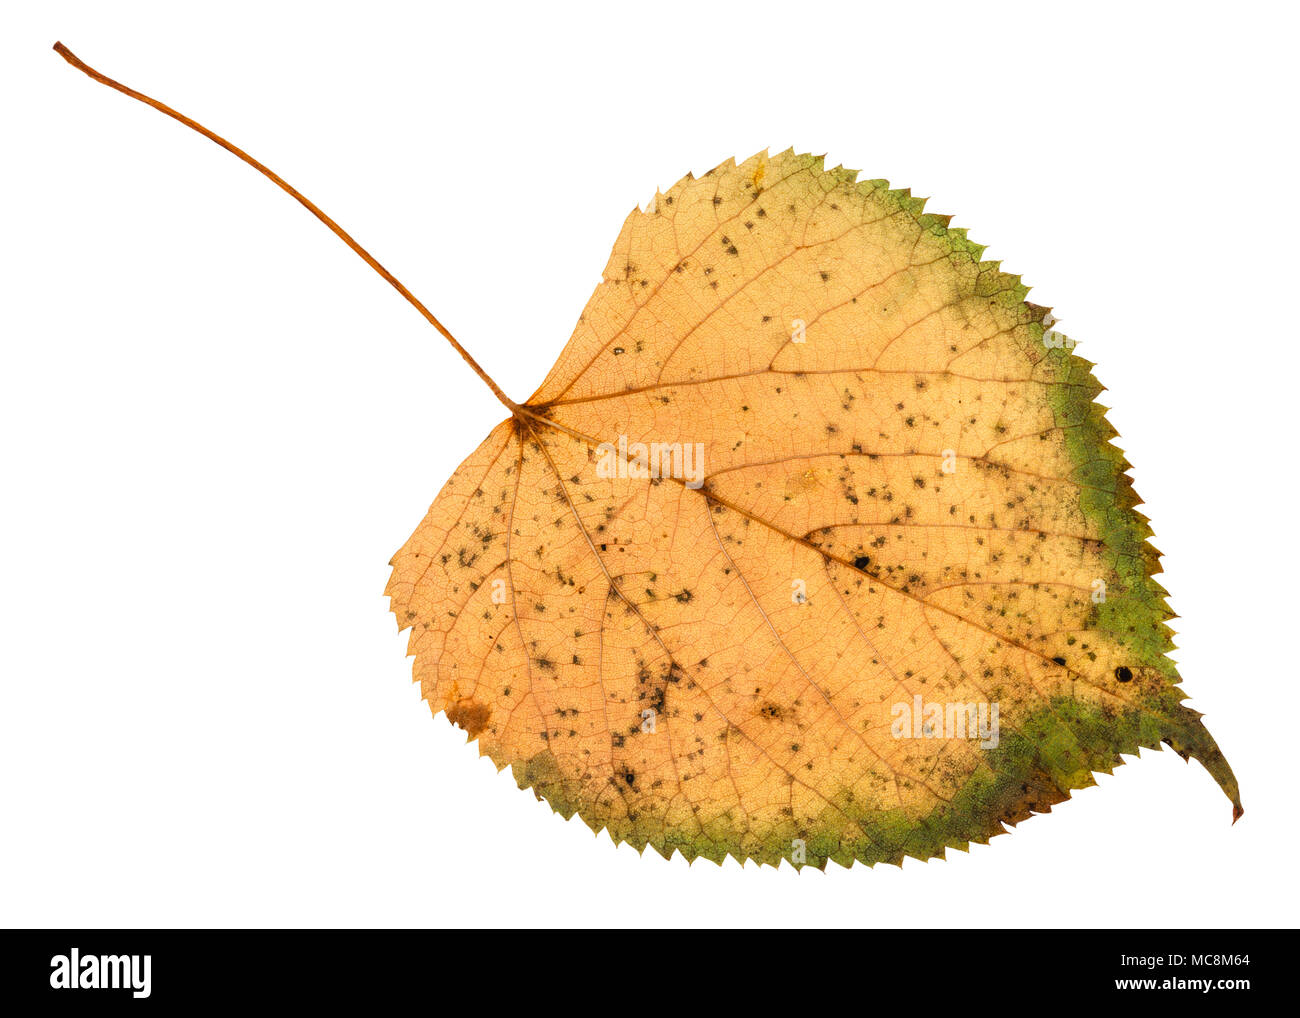 back side of fallen rotten leaf of linden tree isolated on white background Stock Photo